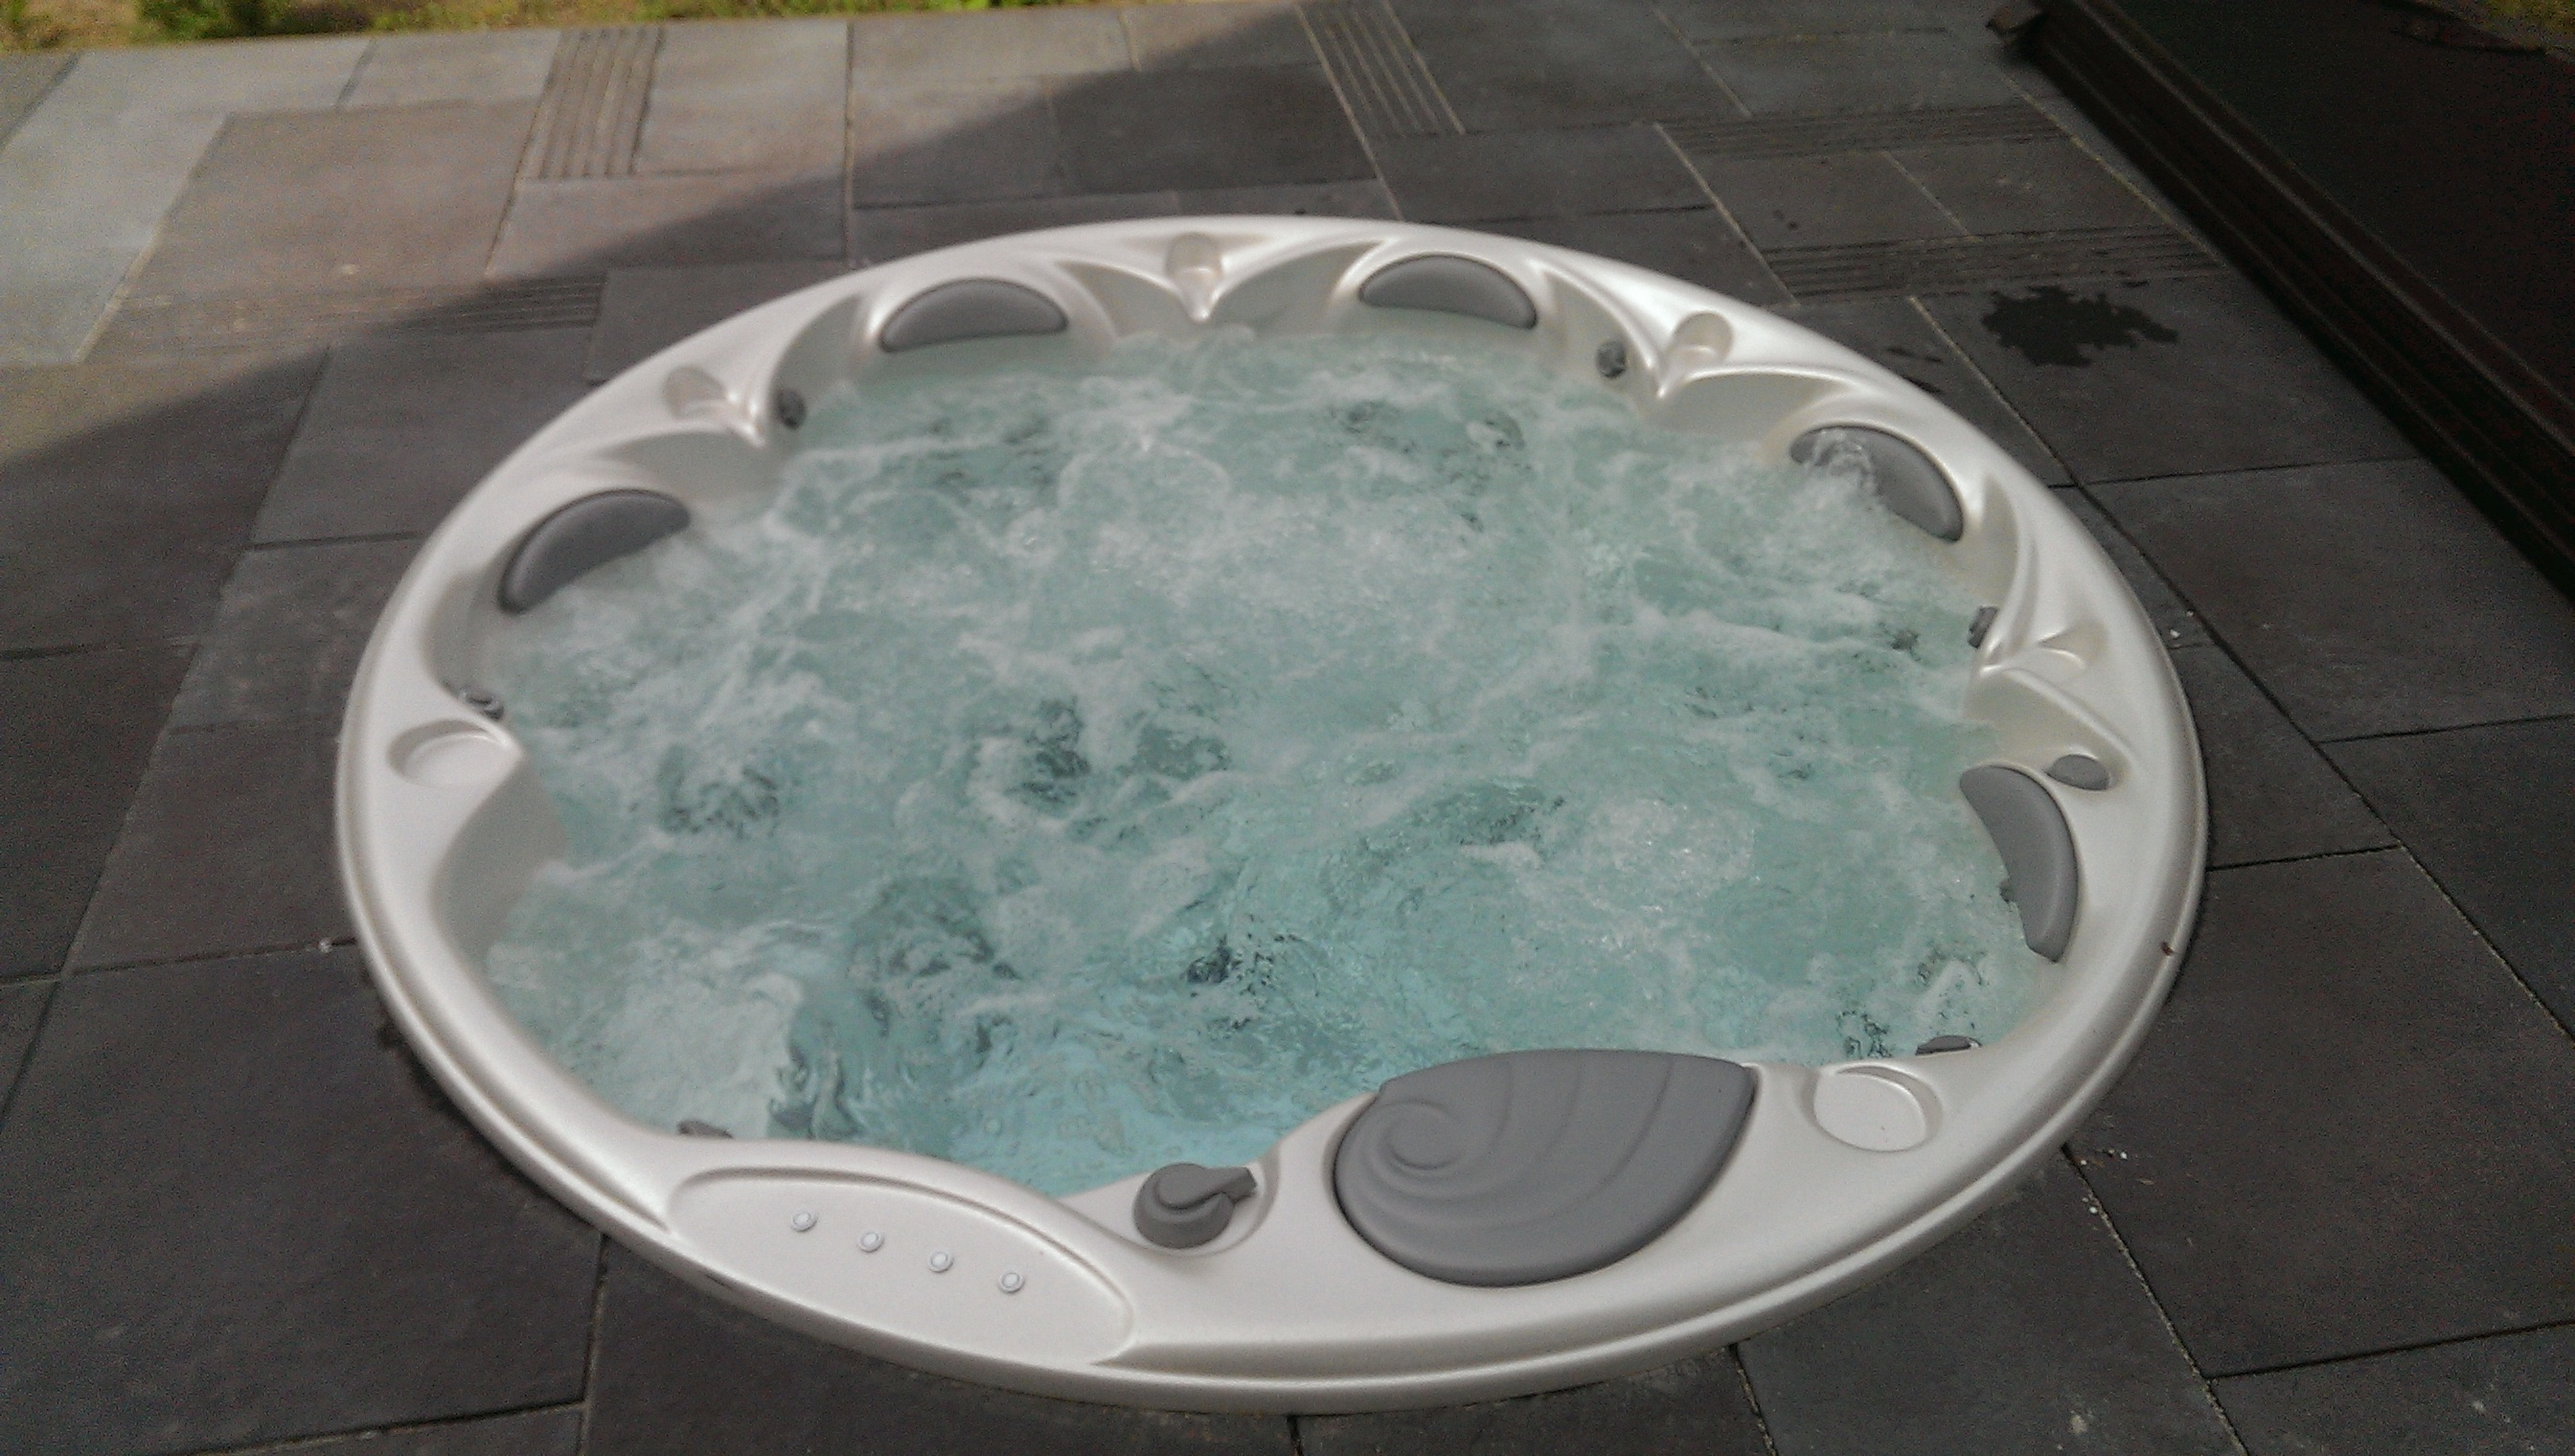 wanna-spa-jacuzzi-orion-mikolow-showroom